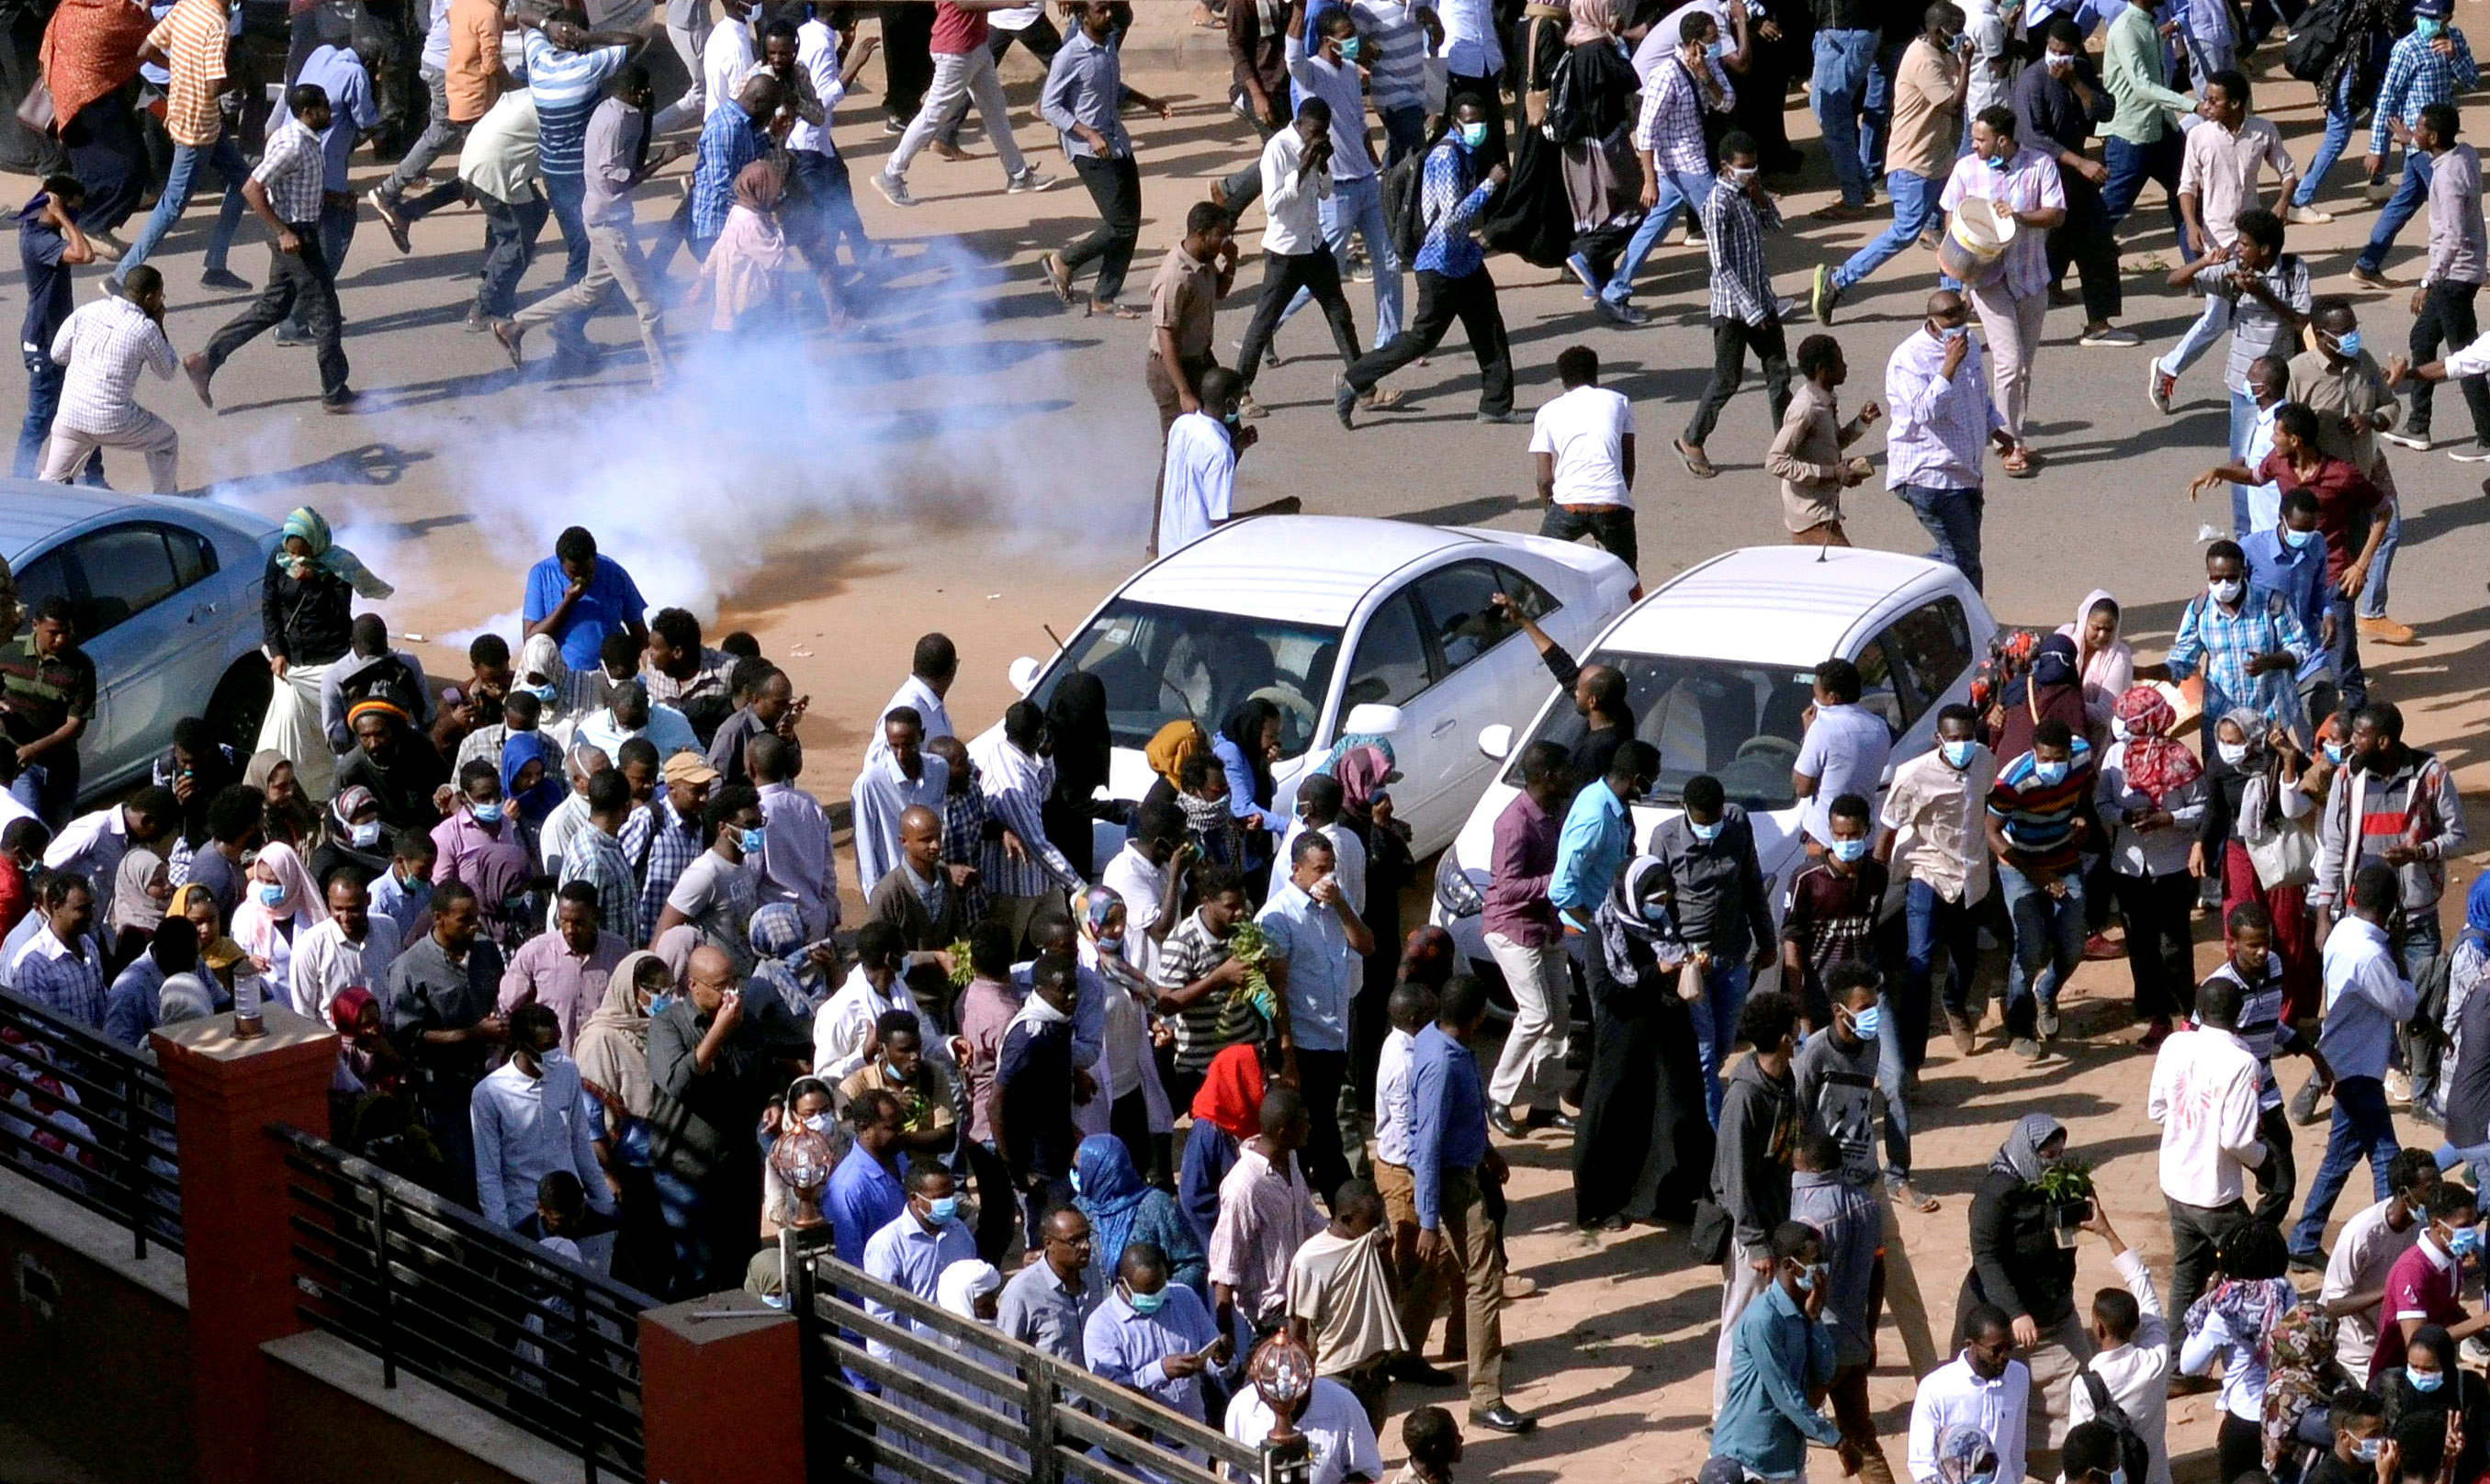 Sudan Demonstrations: The View From Outside